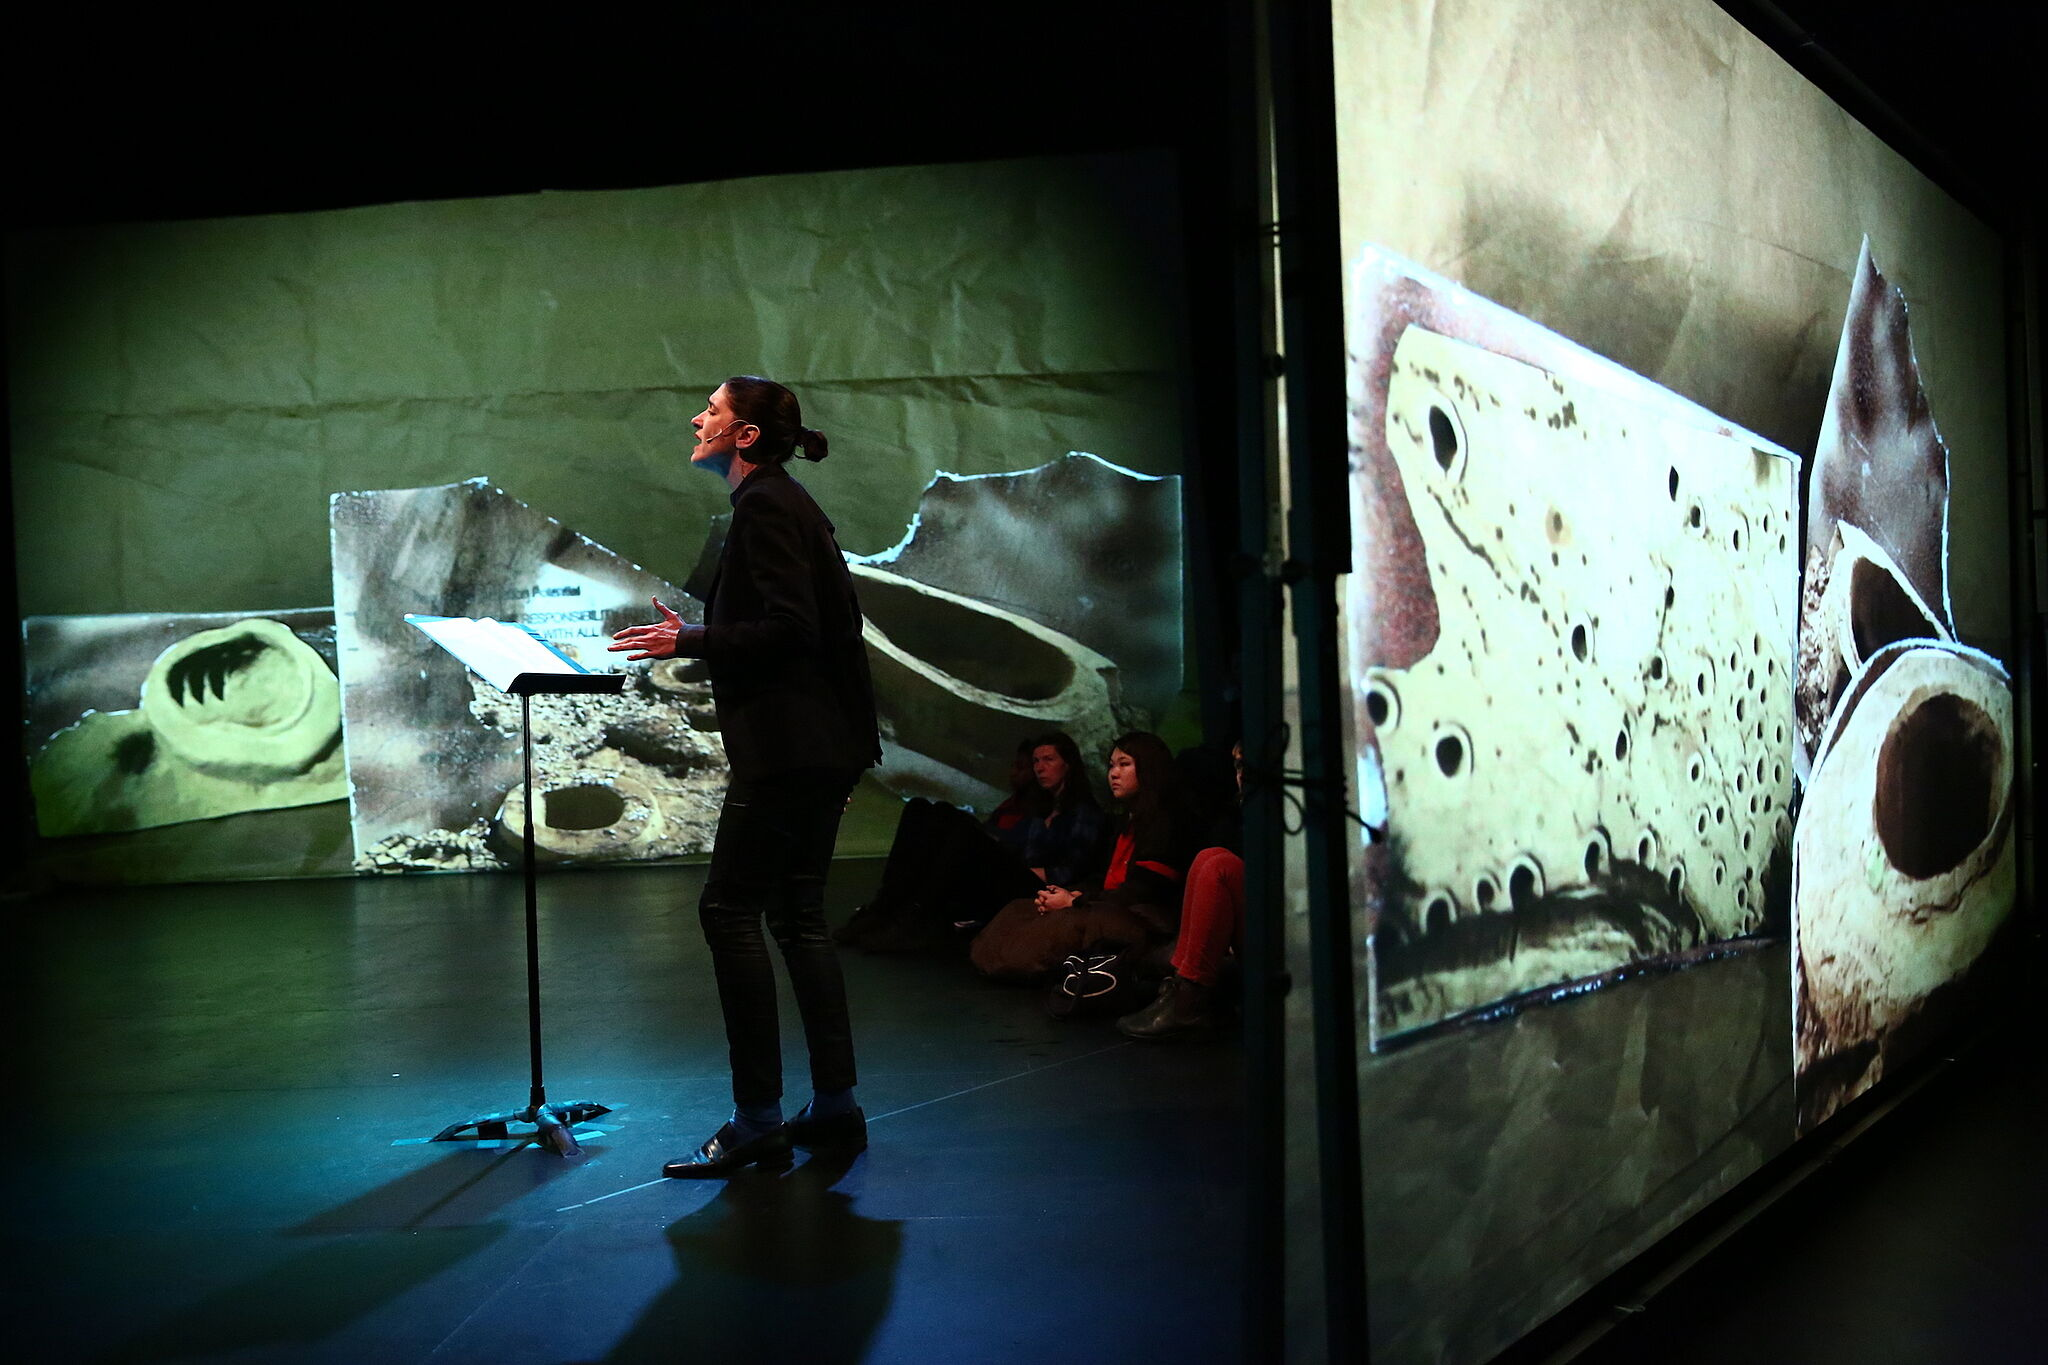 A photo of a person performing with a music stand surrounded by a multimedia performance.